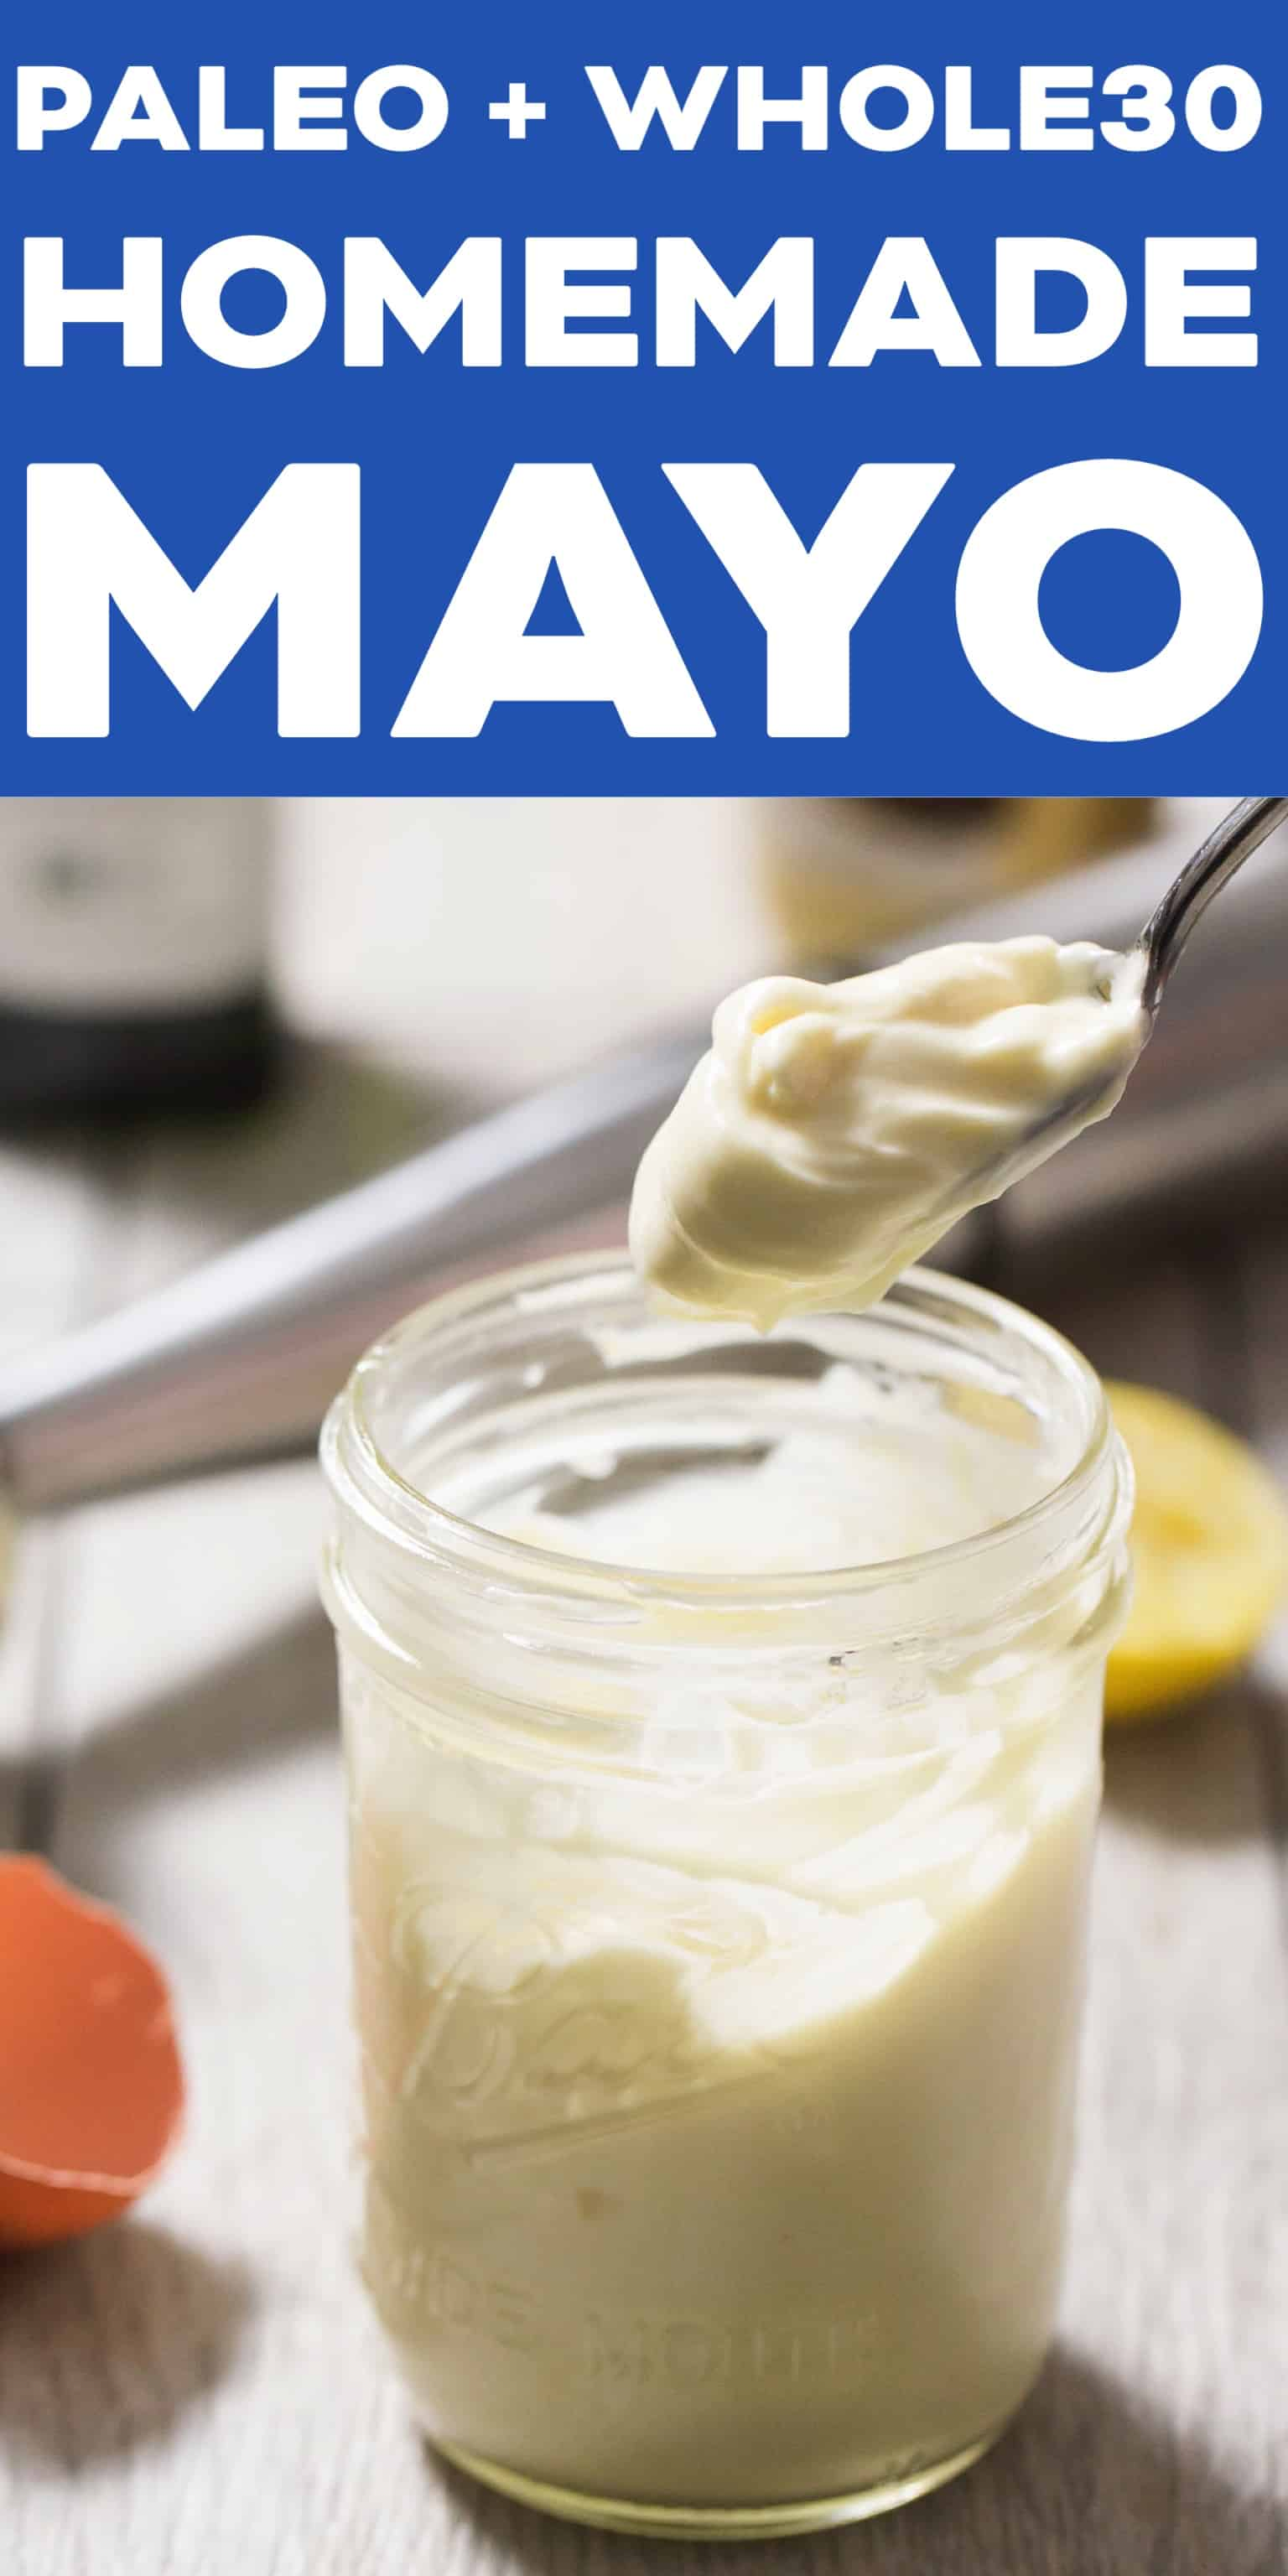 Homemade Mayonnaise (Paleo, Whole30